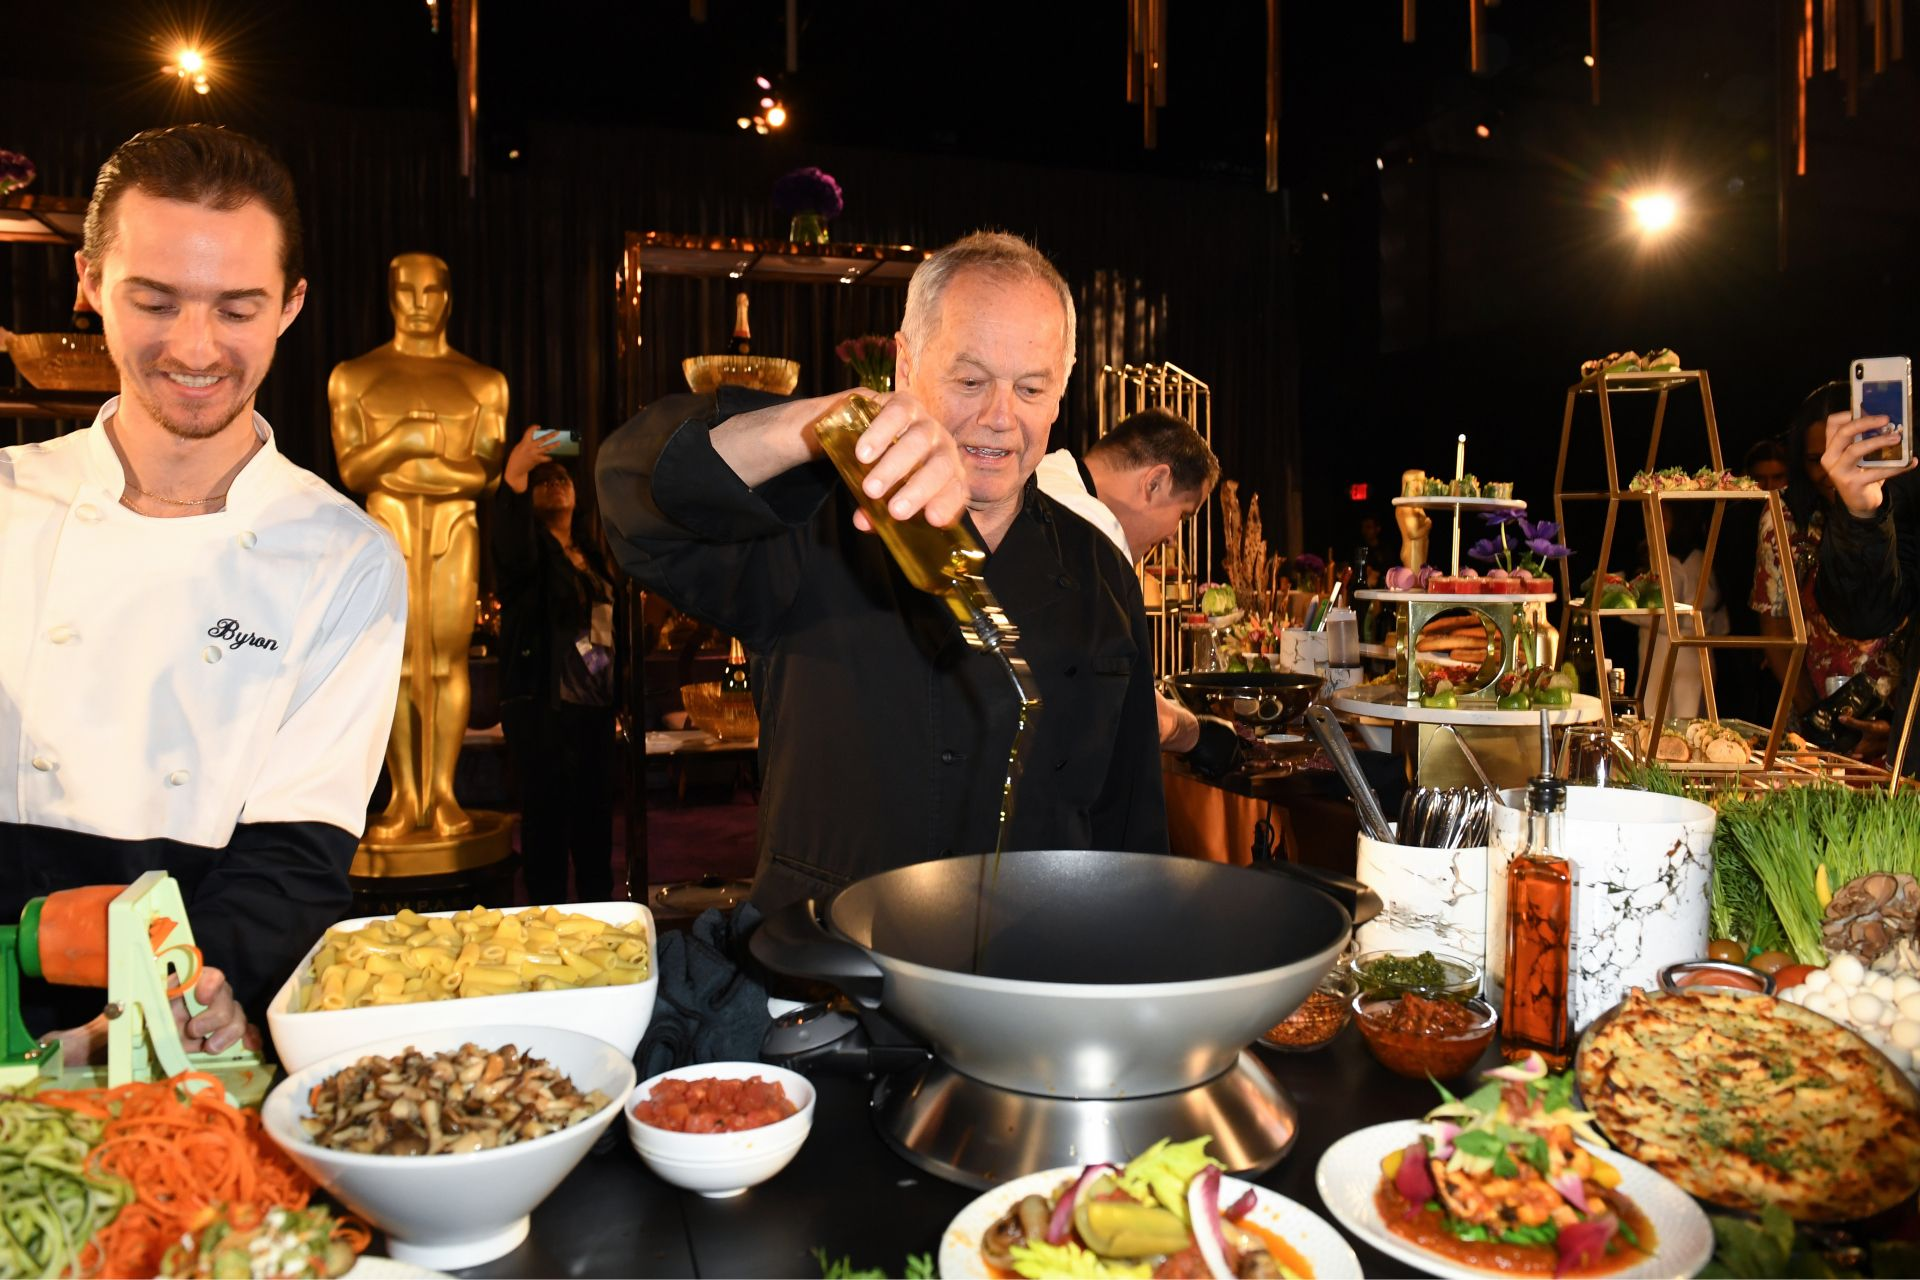 US-Austrian chef Wolfgang Puck (C) and son Byron Puck (L) prepare a dish during the 92nd Annual Academy Awards Governors Ball press preview at The Ray Dolby Ballroom at Hollywood & Highland Center, in Hollywood, California, on January 31, 2020. (Photo by VALERIE MACON / AFP)